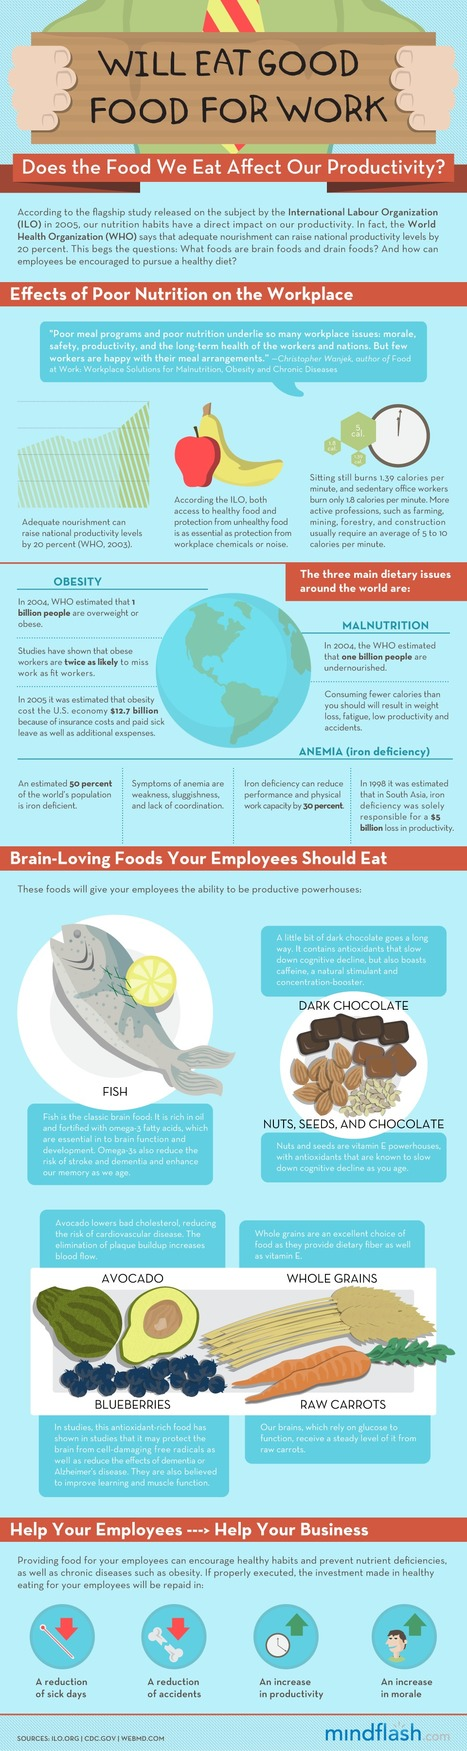 Does The Food We Eat Affect Our Productivity?   EPIC Infographic   Scoop.it